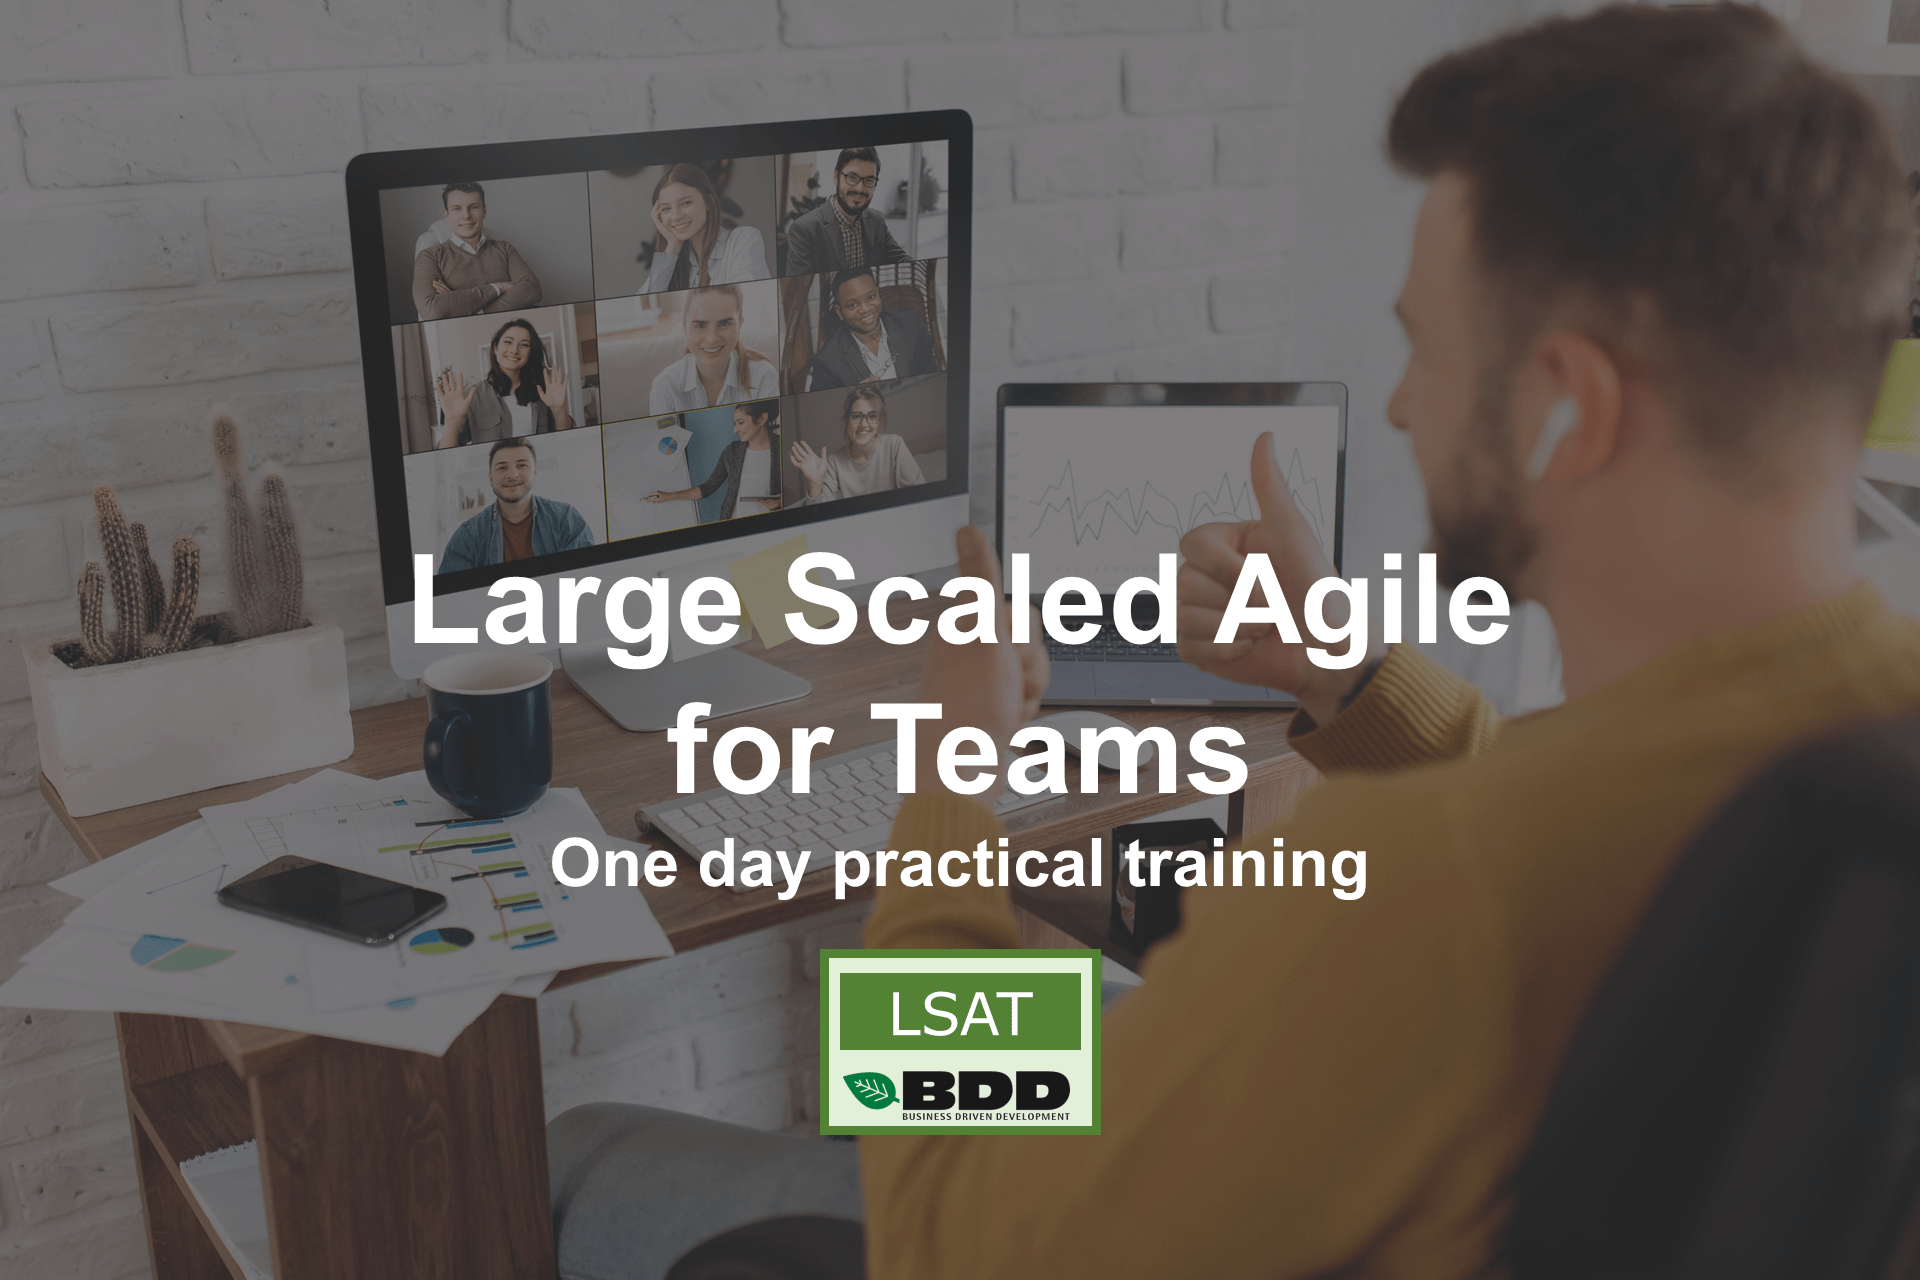 Large Scaled Agile for Teams